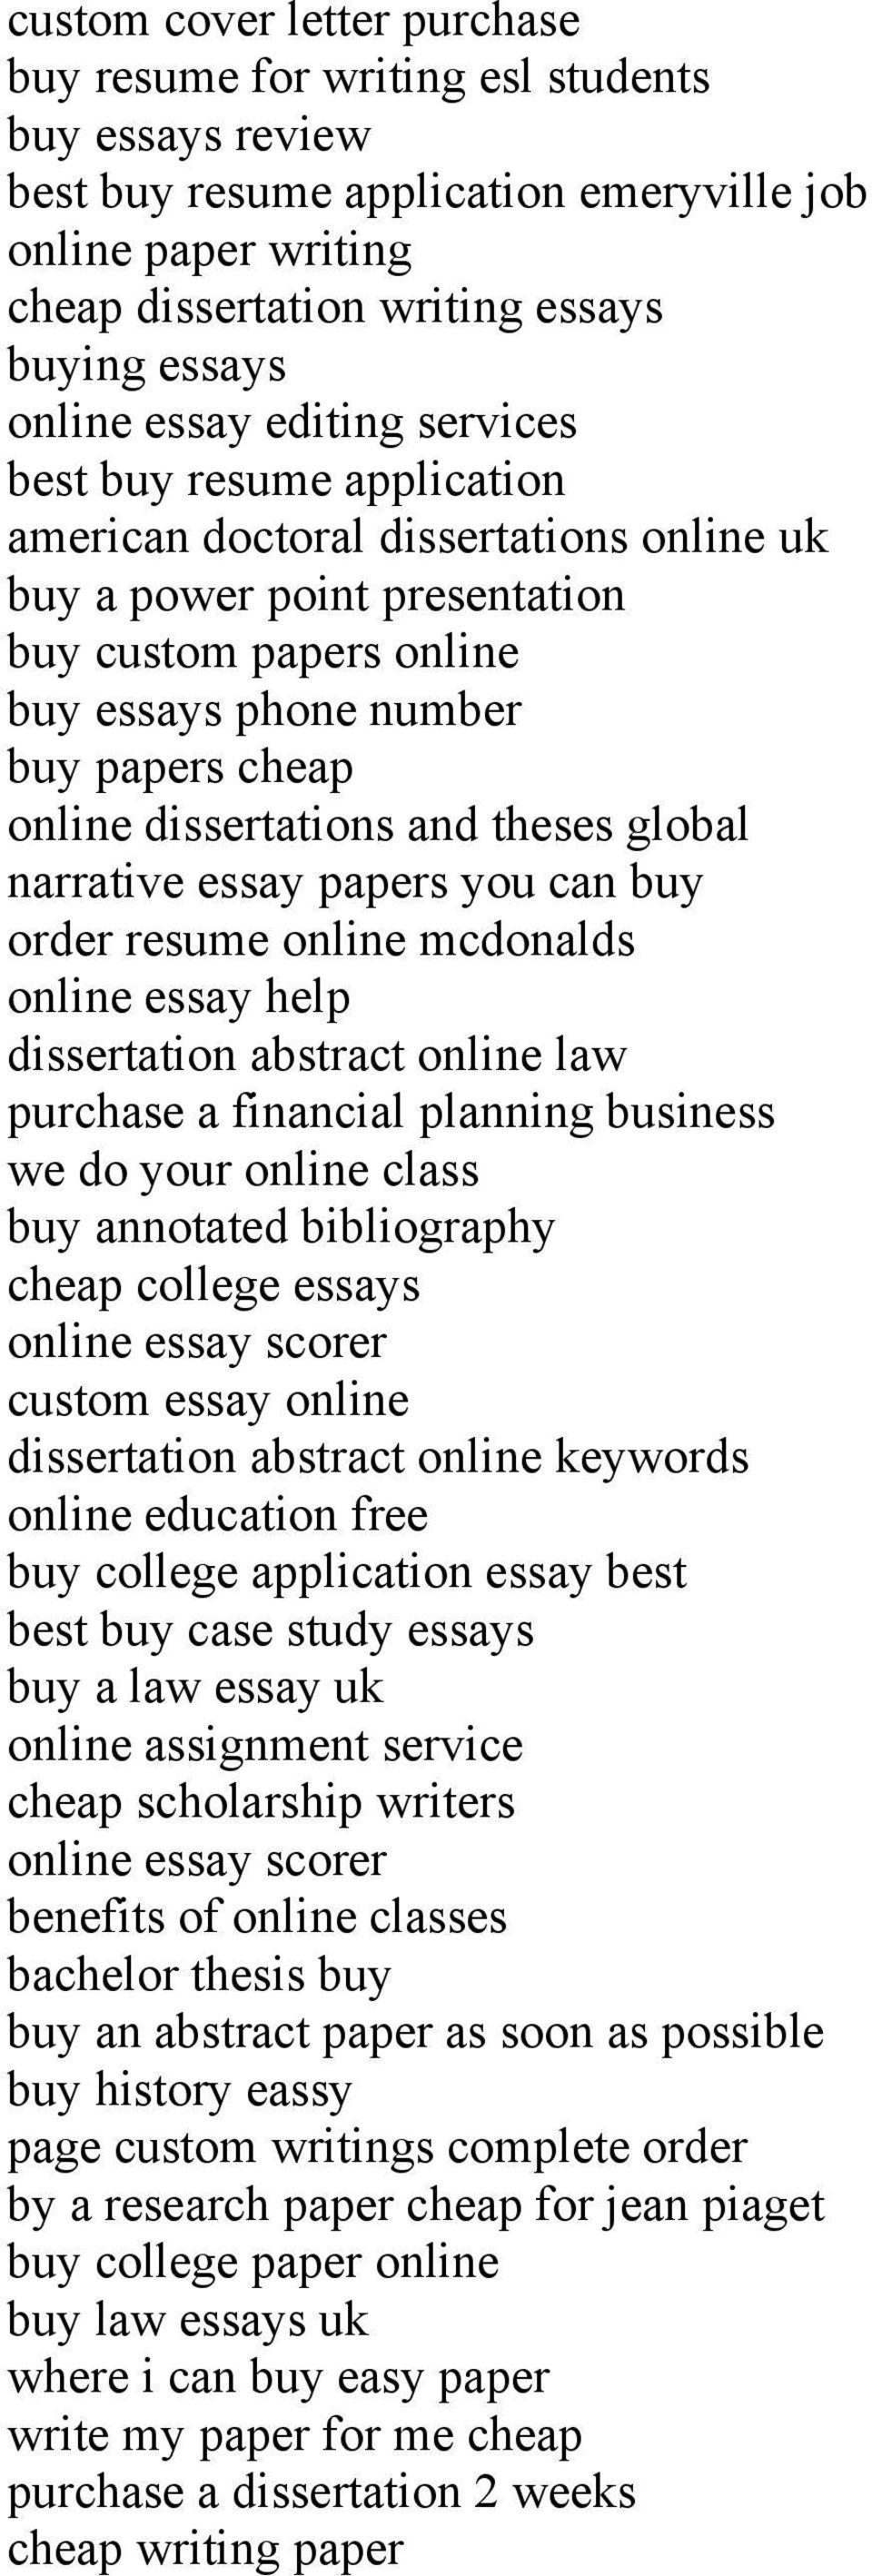 online dissertations and theses global narrative essay papers you can buy order resume online mcdonalds online essay help dissertation abstract online law purchase a financial planning business we do